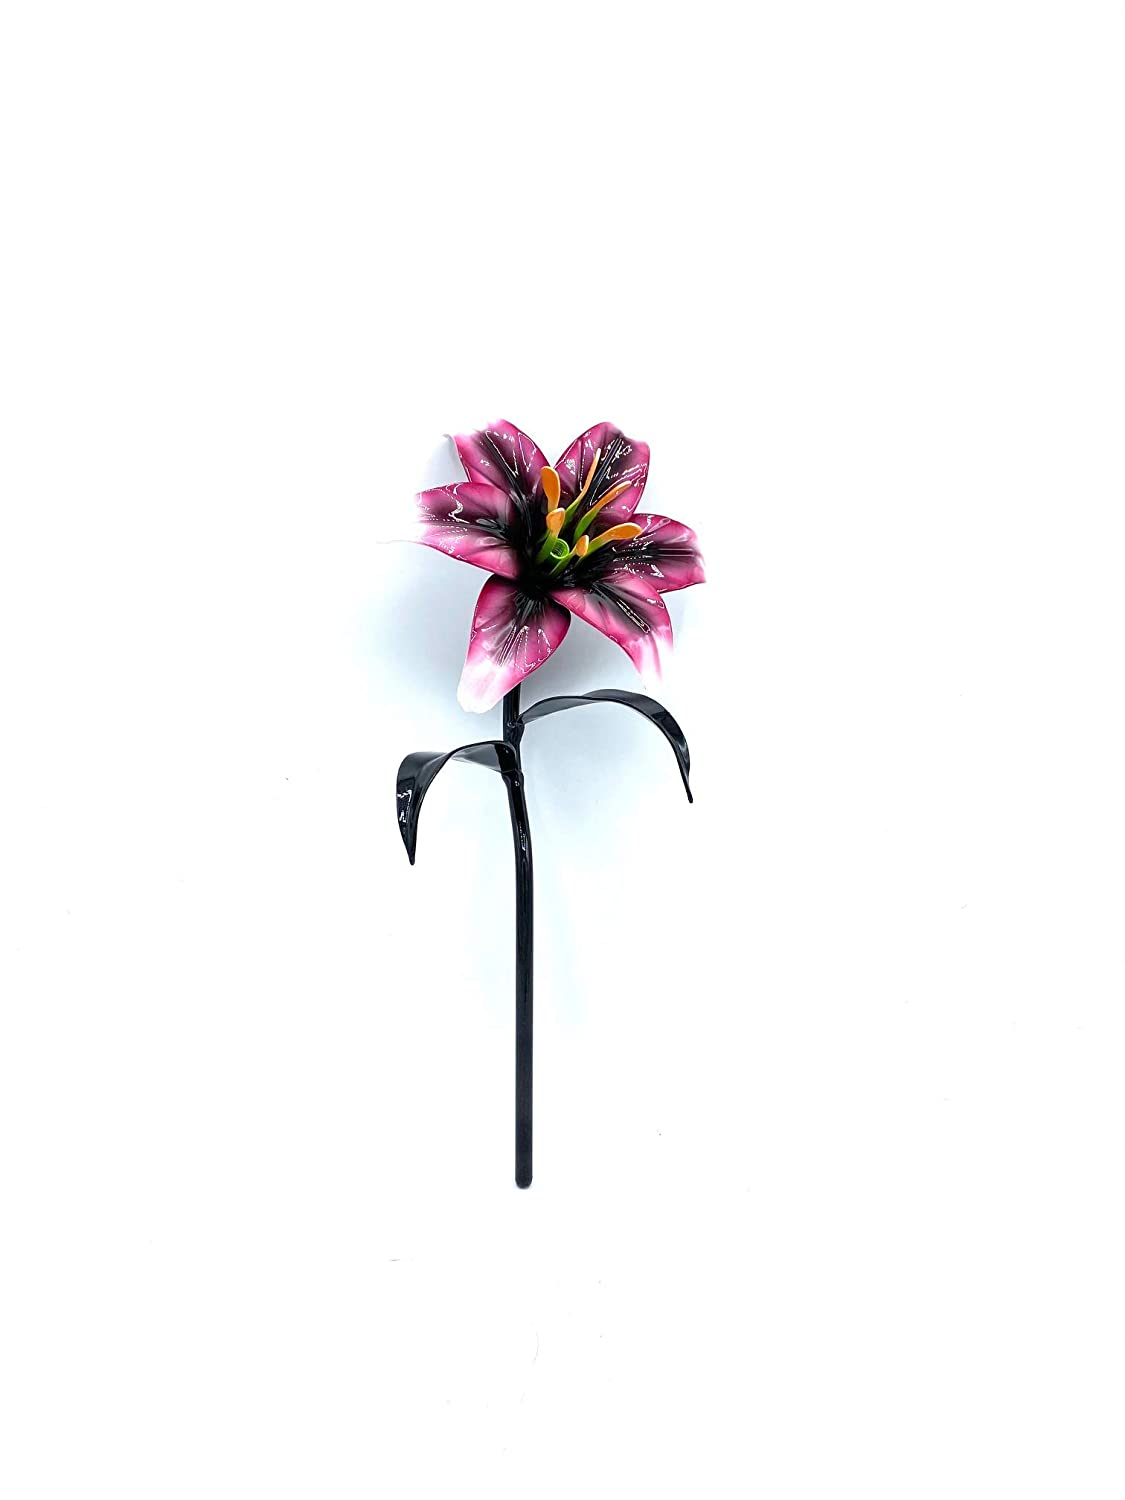 Aluma Flowers Handmade Aluminum Super popular specialty store Lily with F Black Base- Limited time trial price Stem No